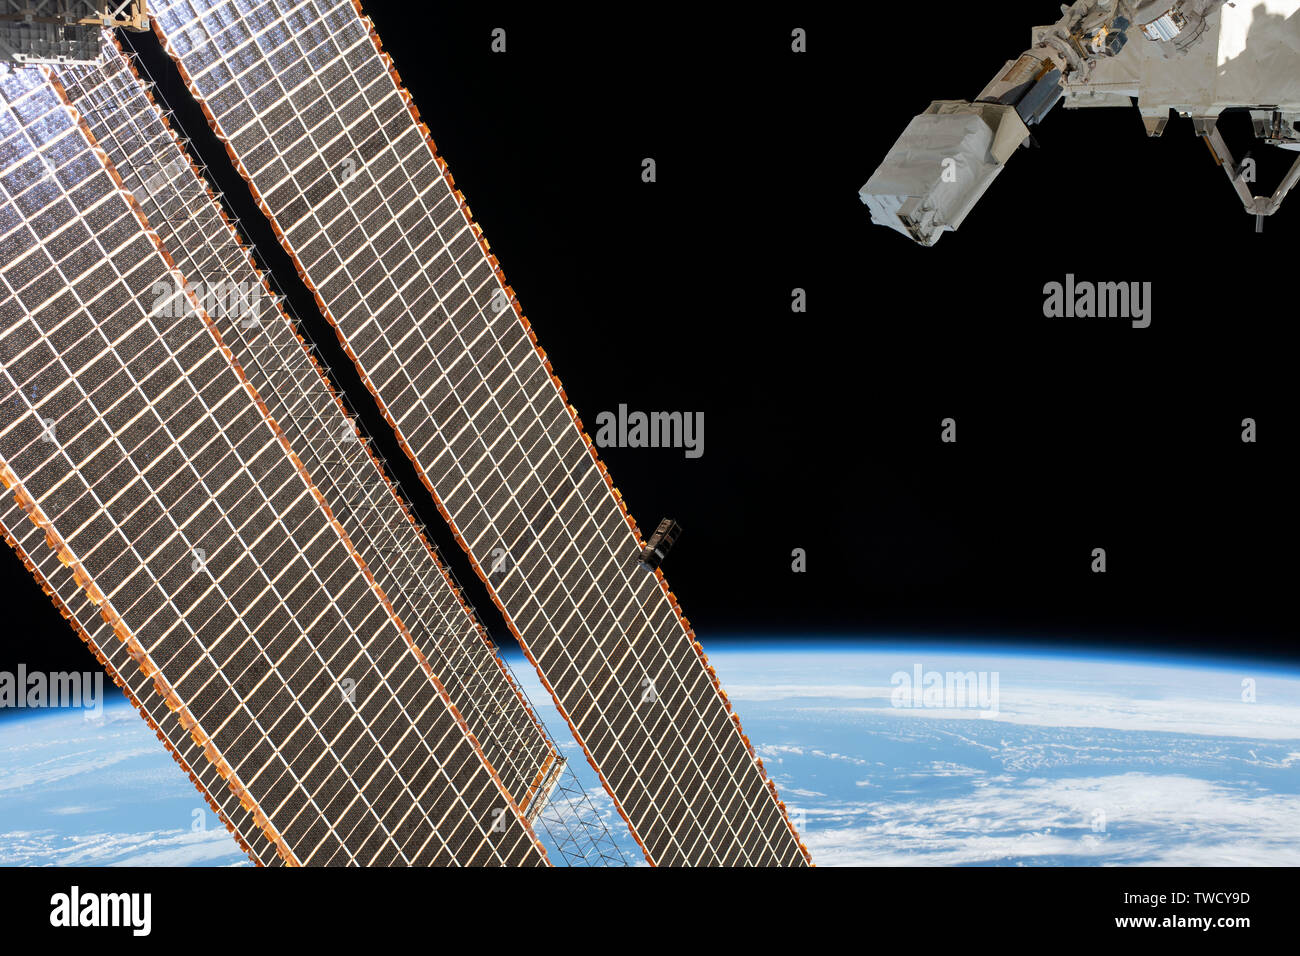 A tiny satellite from Singapore, also known as a CubeSat, is ejected from the Japanese Small Satellite Orbital Deployer past the solar array of the International Space Station June 17, 2019 in Earth Orbit. - Stock Image